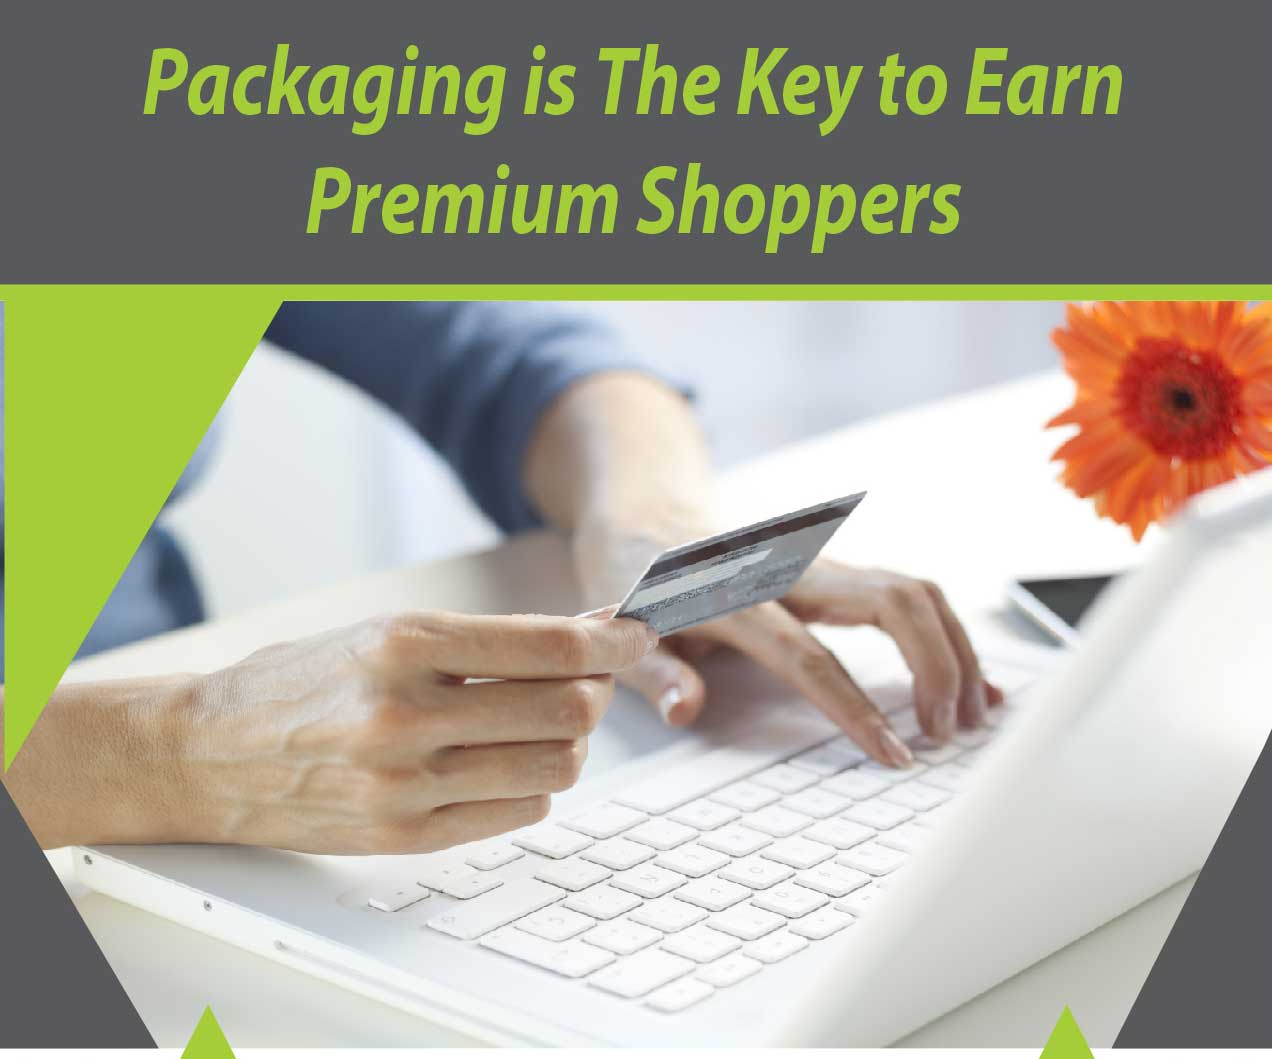 Packaging is the Key to Earn Premium Shoppers